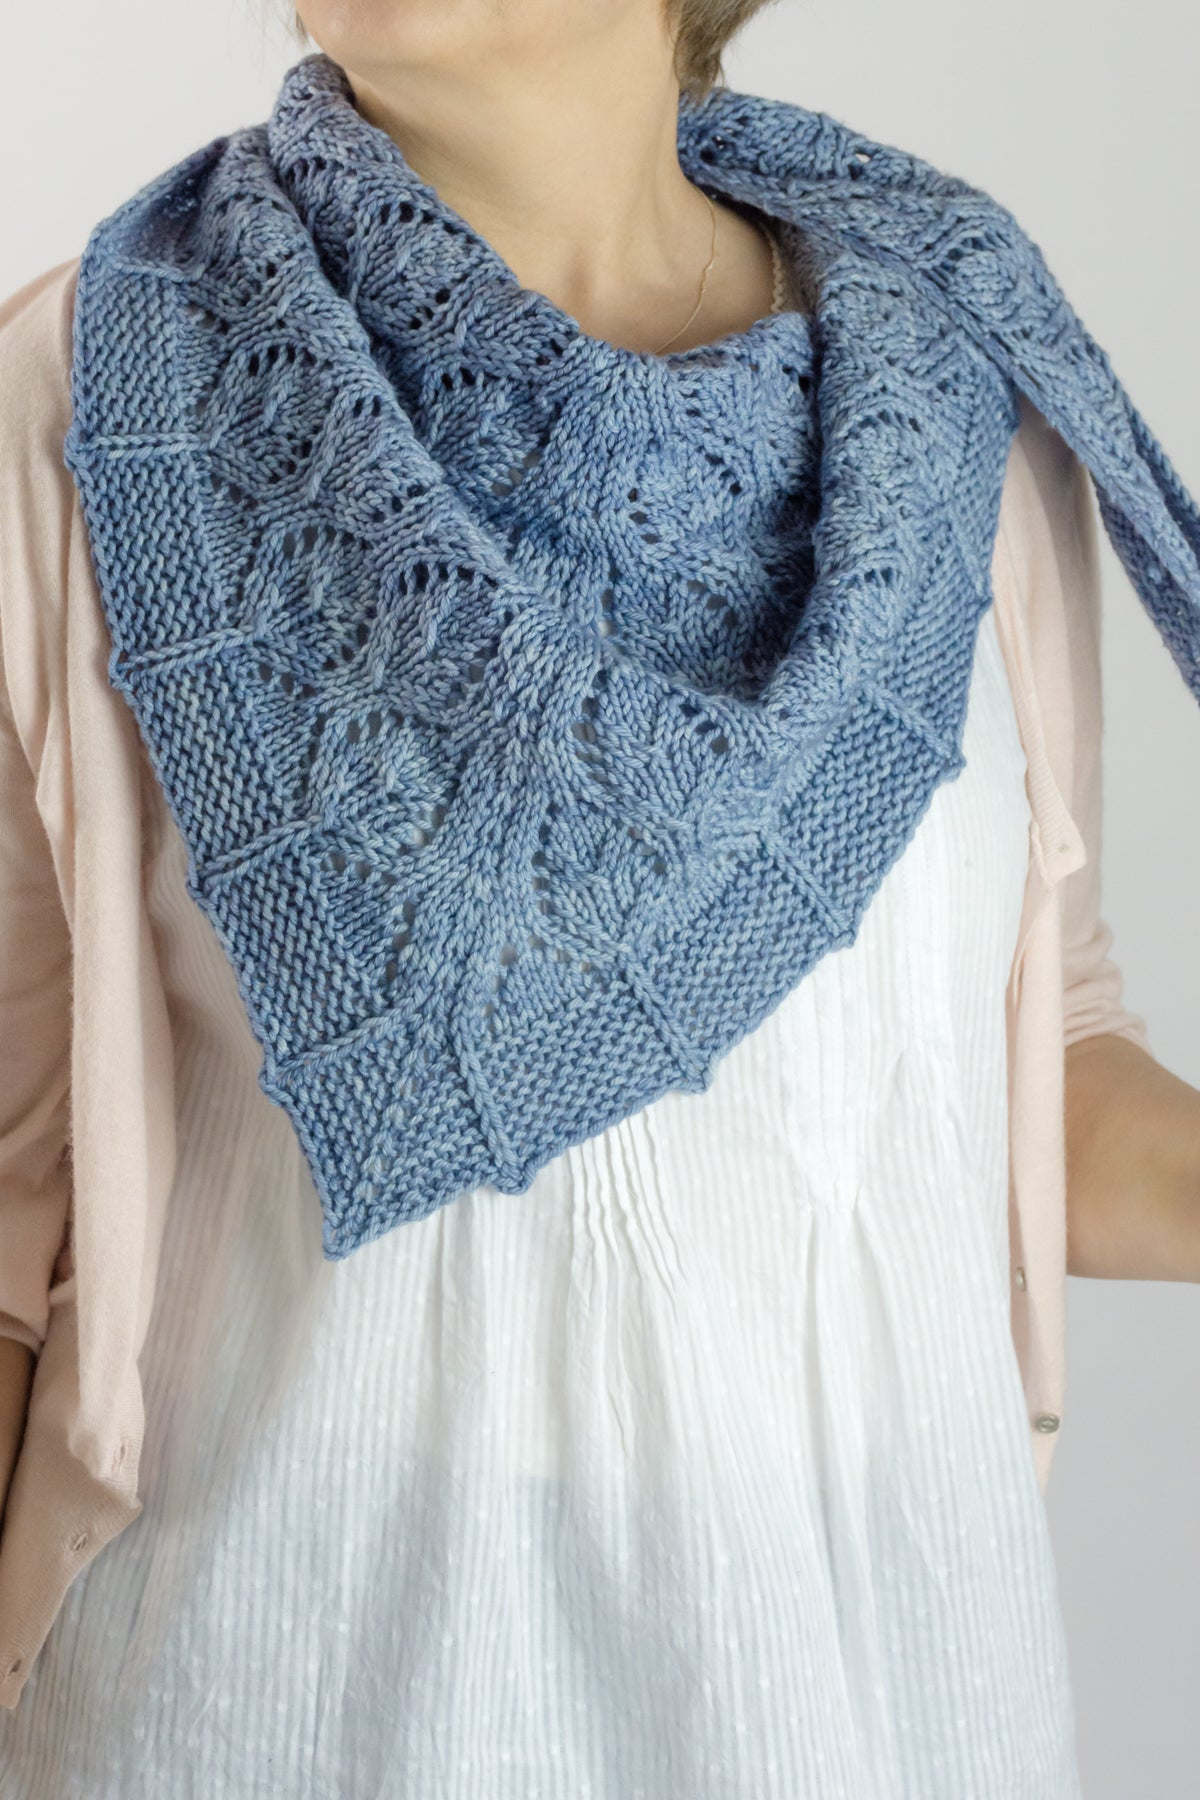 lace scraf knitting pattern